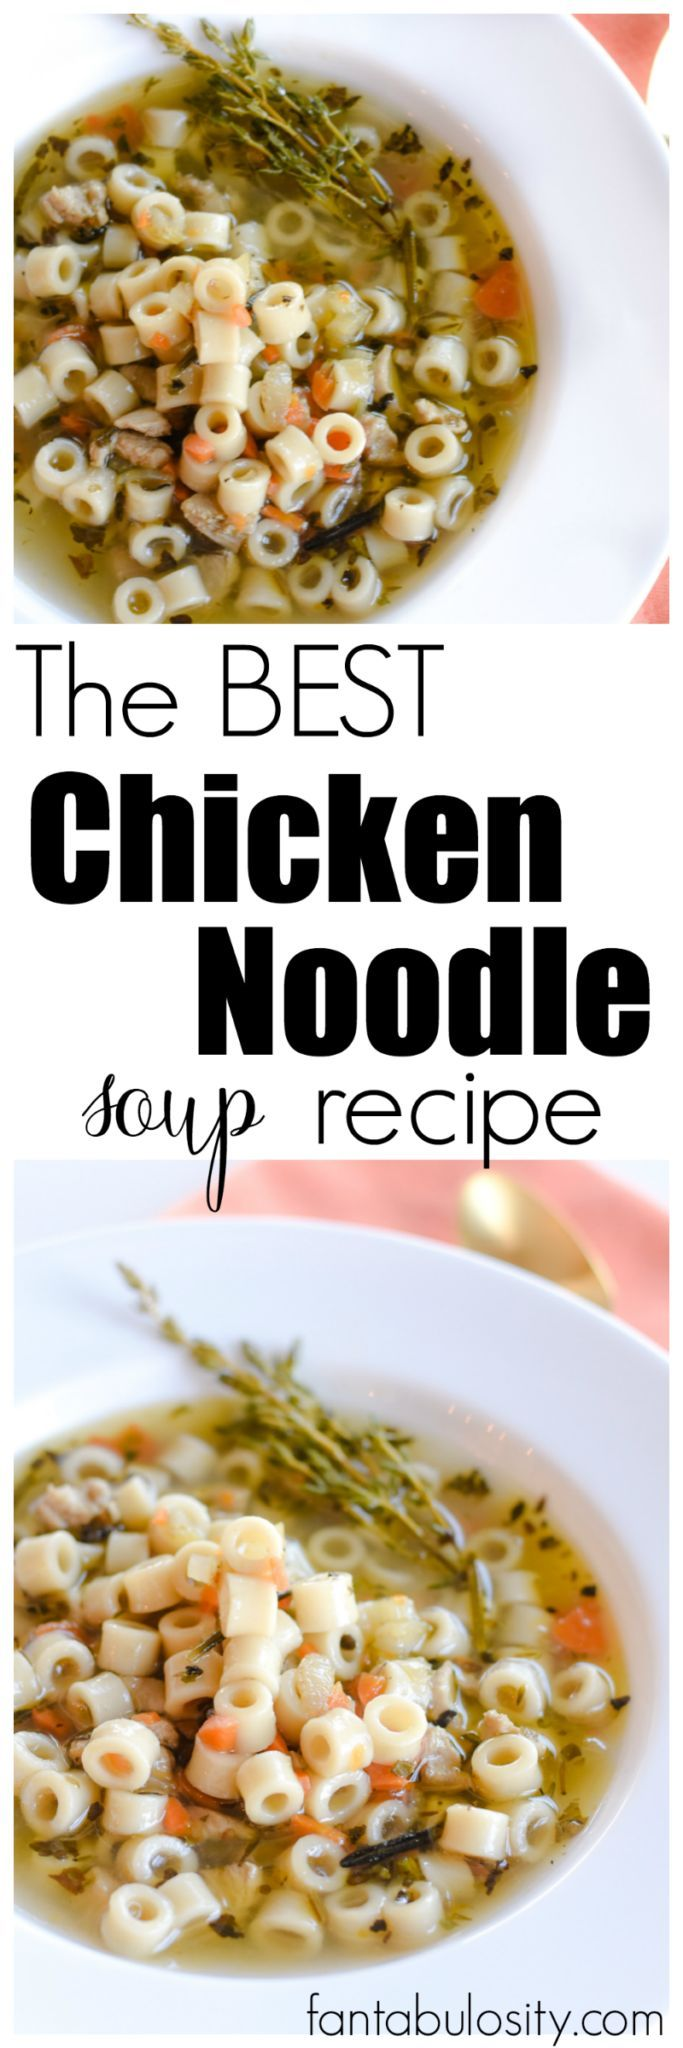 The Best Chicken Noodle Soup Recipe - Quick and Easy